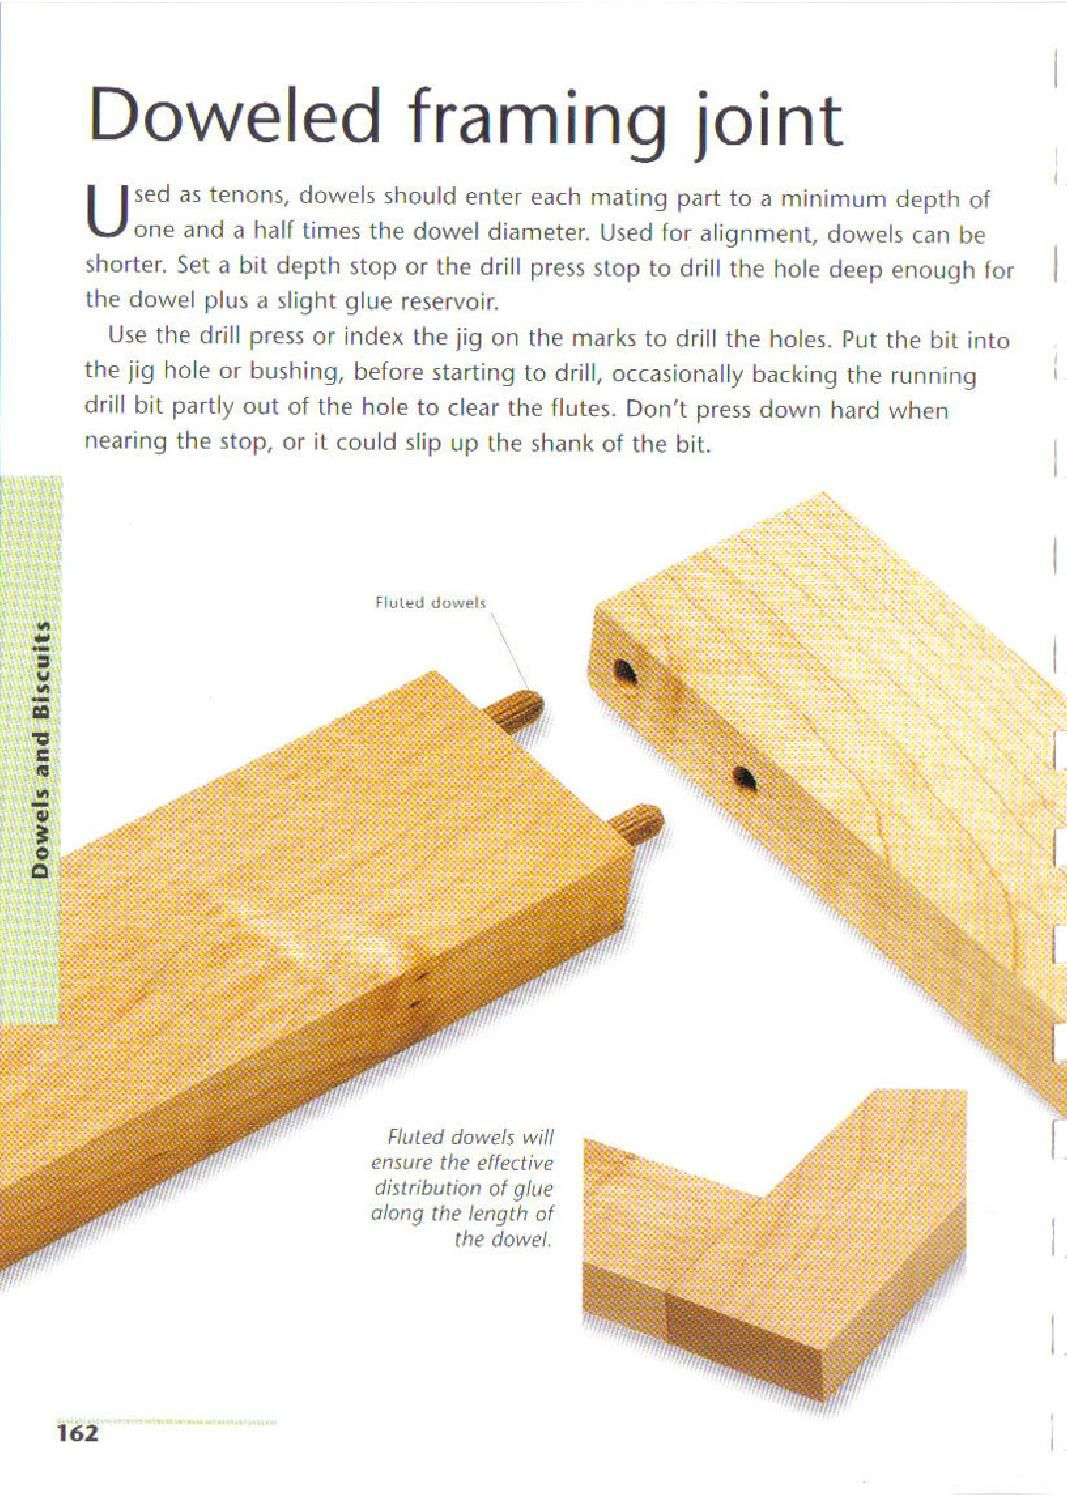 Professional flatpack assembly service professional crew of joiners - The Joint Book The Complete Guide To Wood Joinery